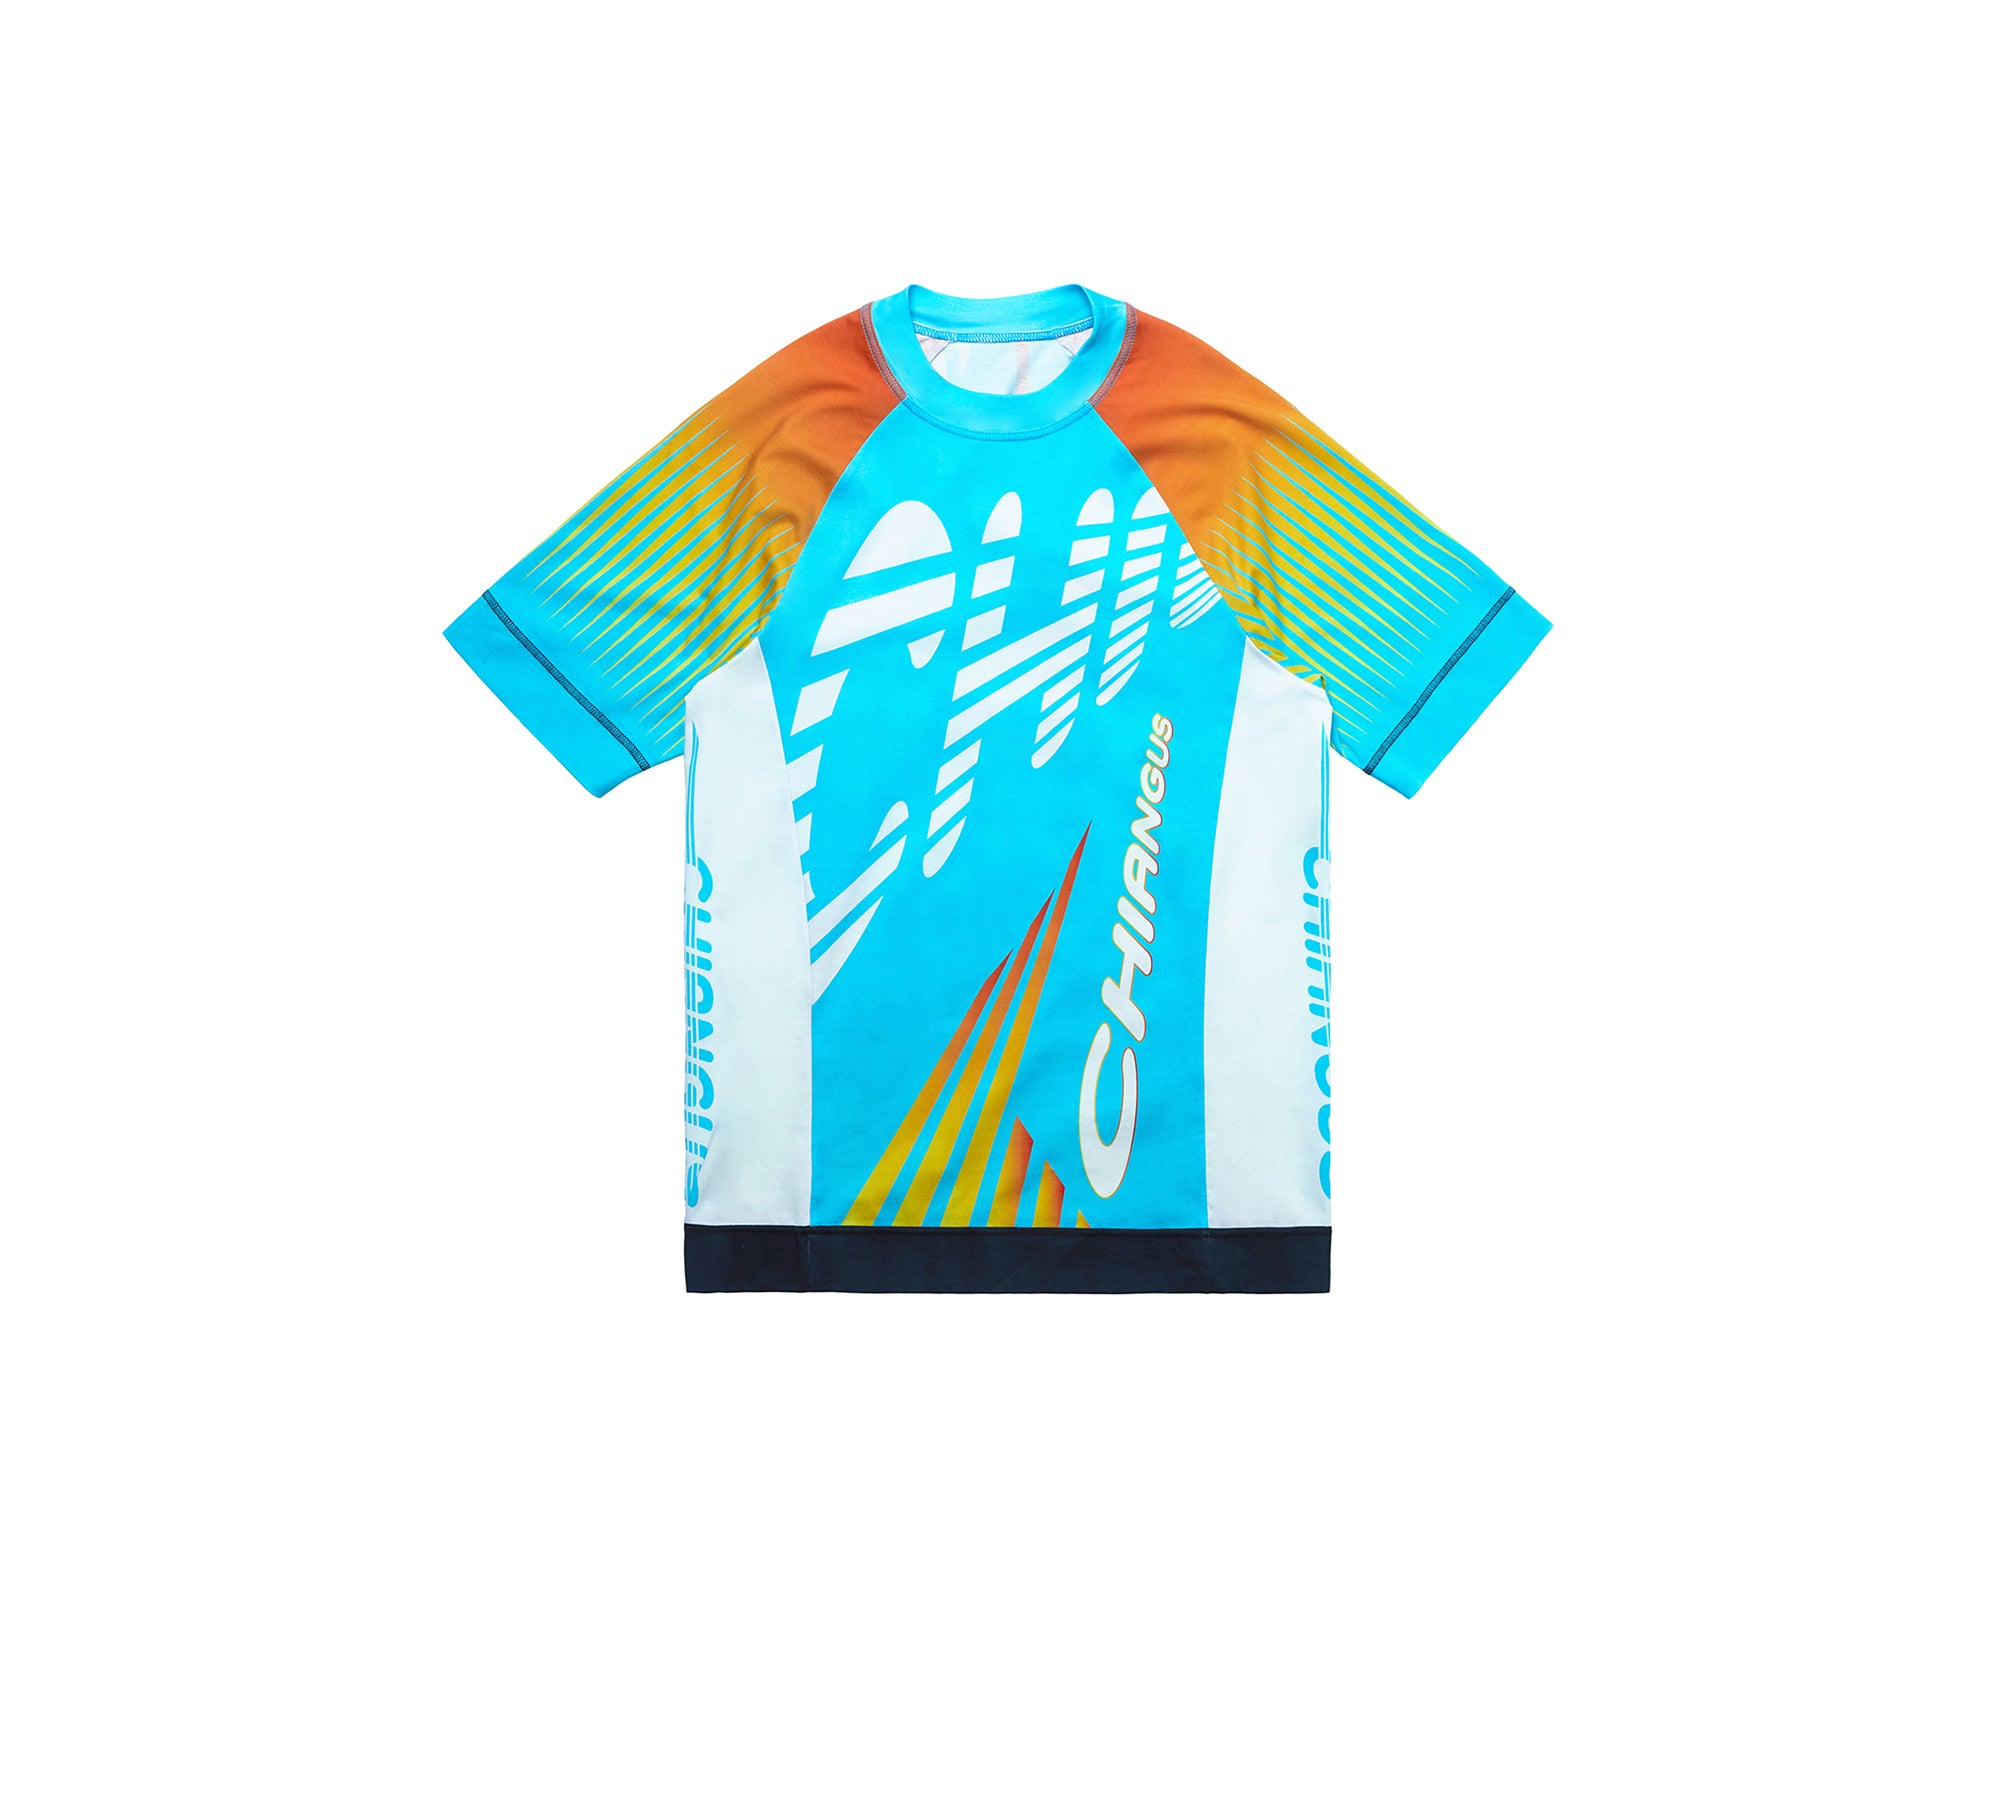 RACING PRINTED T-SHIRT